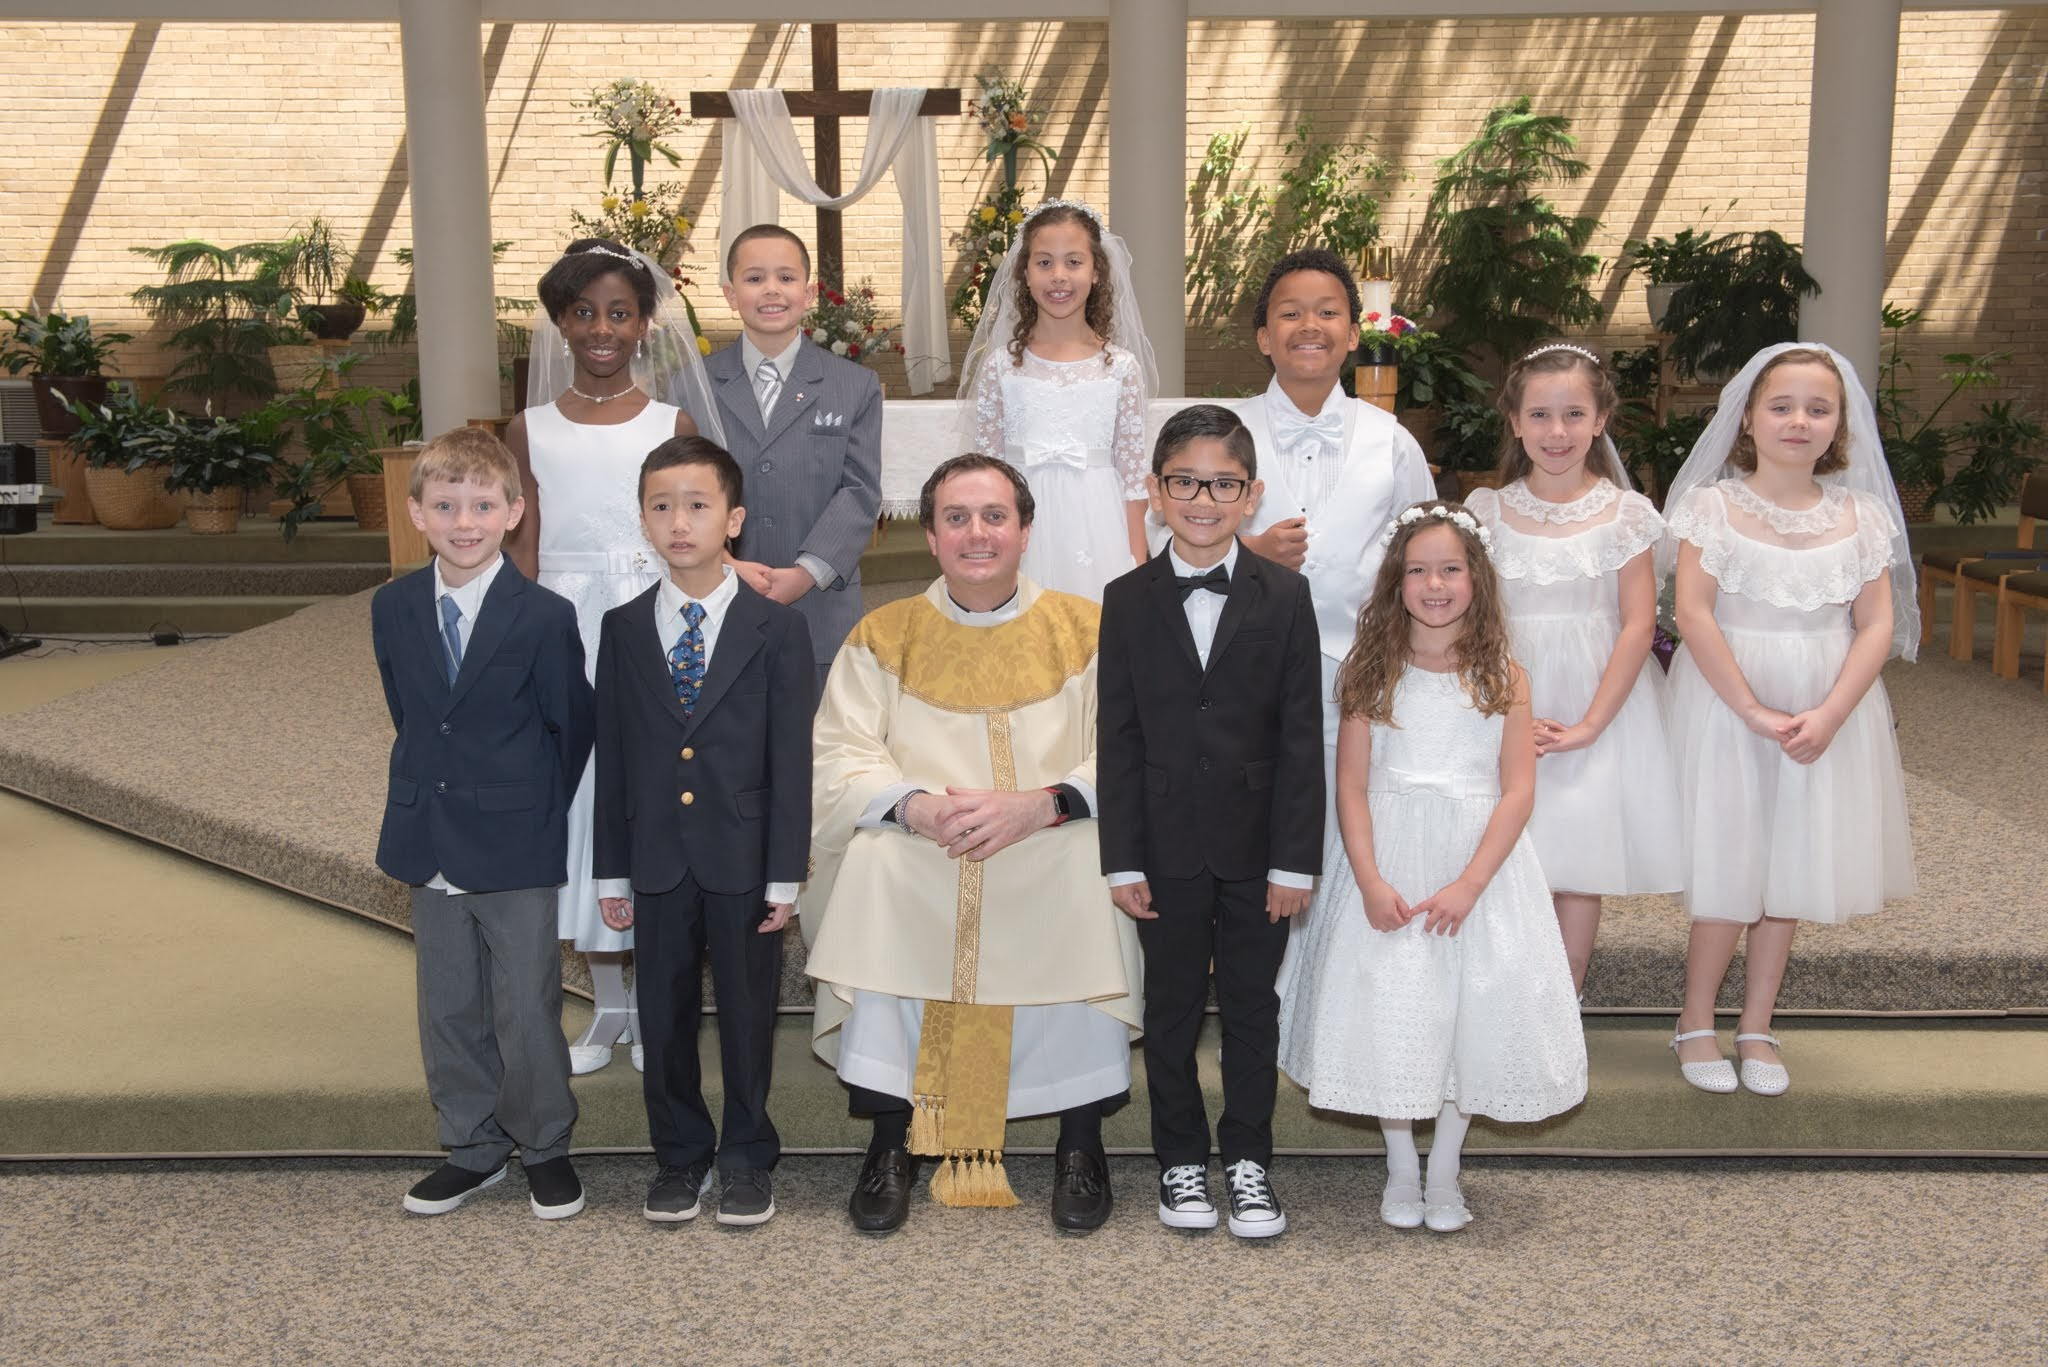 First Communions 2018 - April 29, 2018